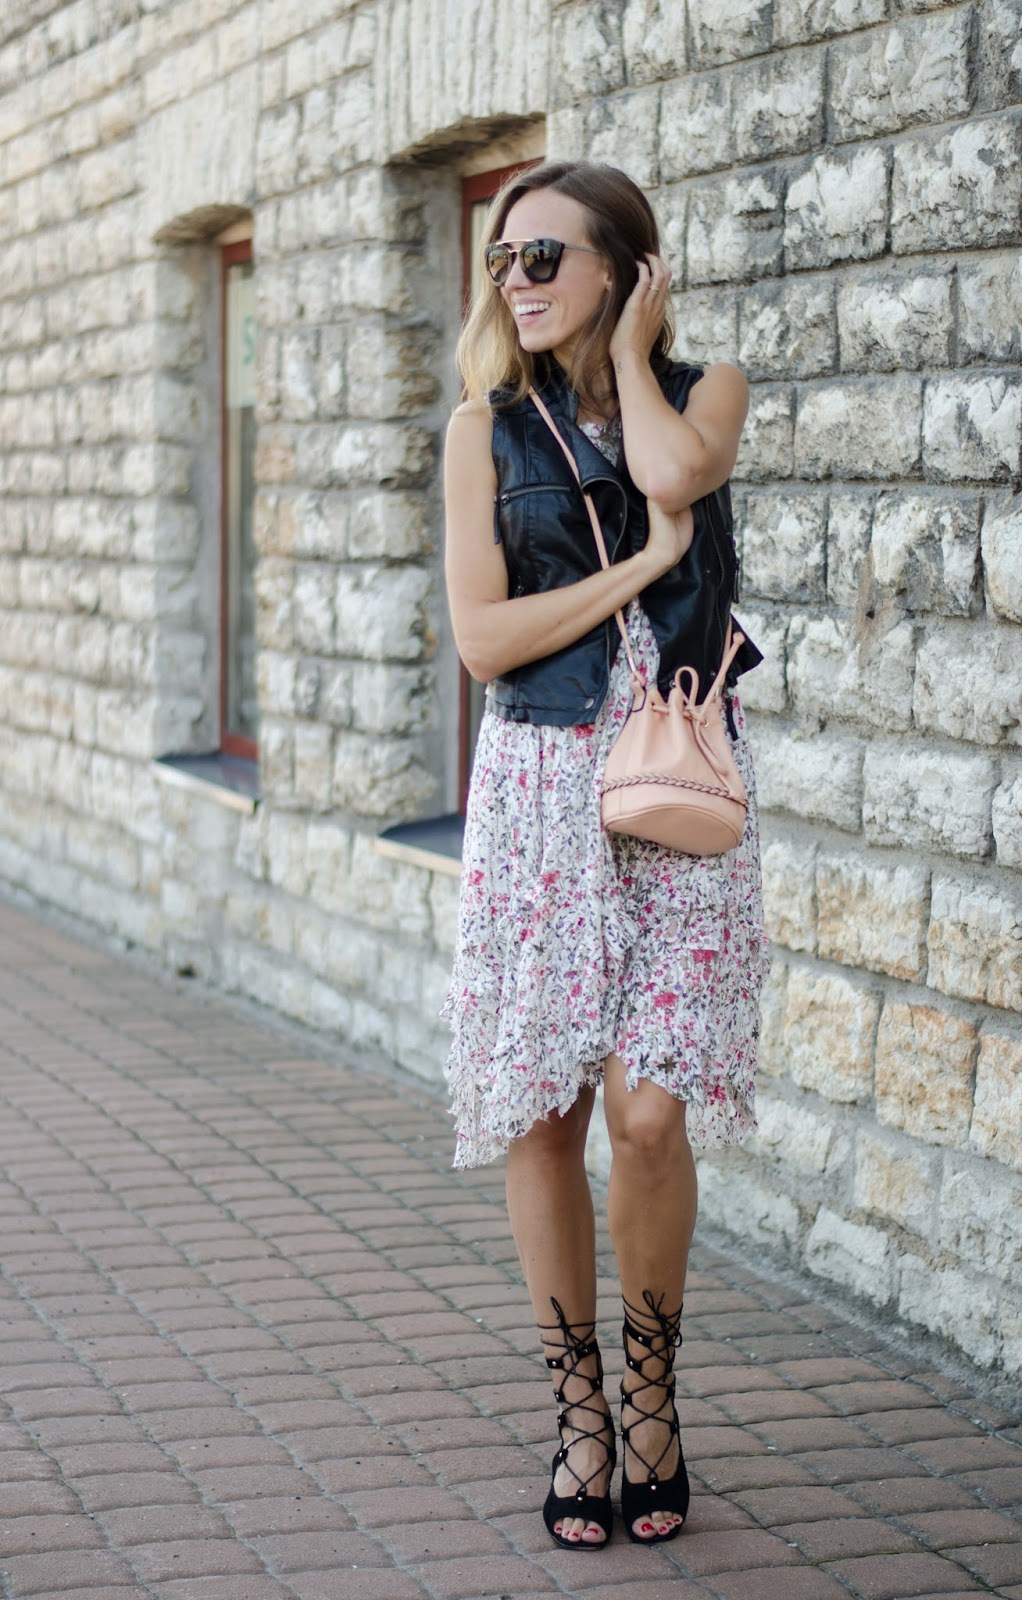 kristjaana mere floral summer midi dress outfit